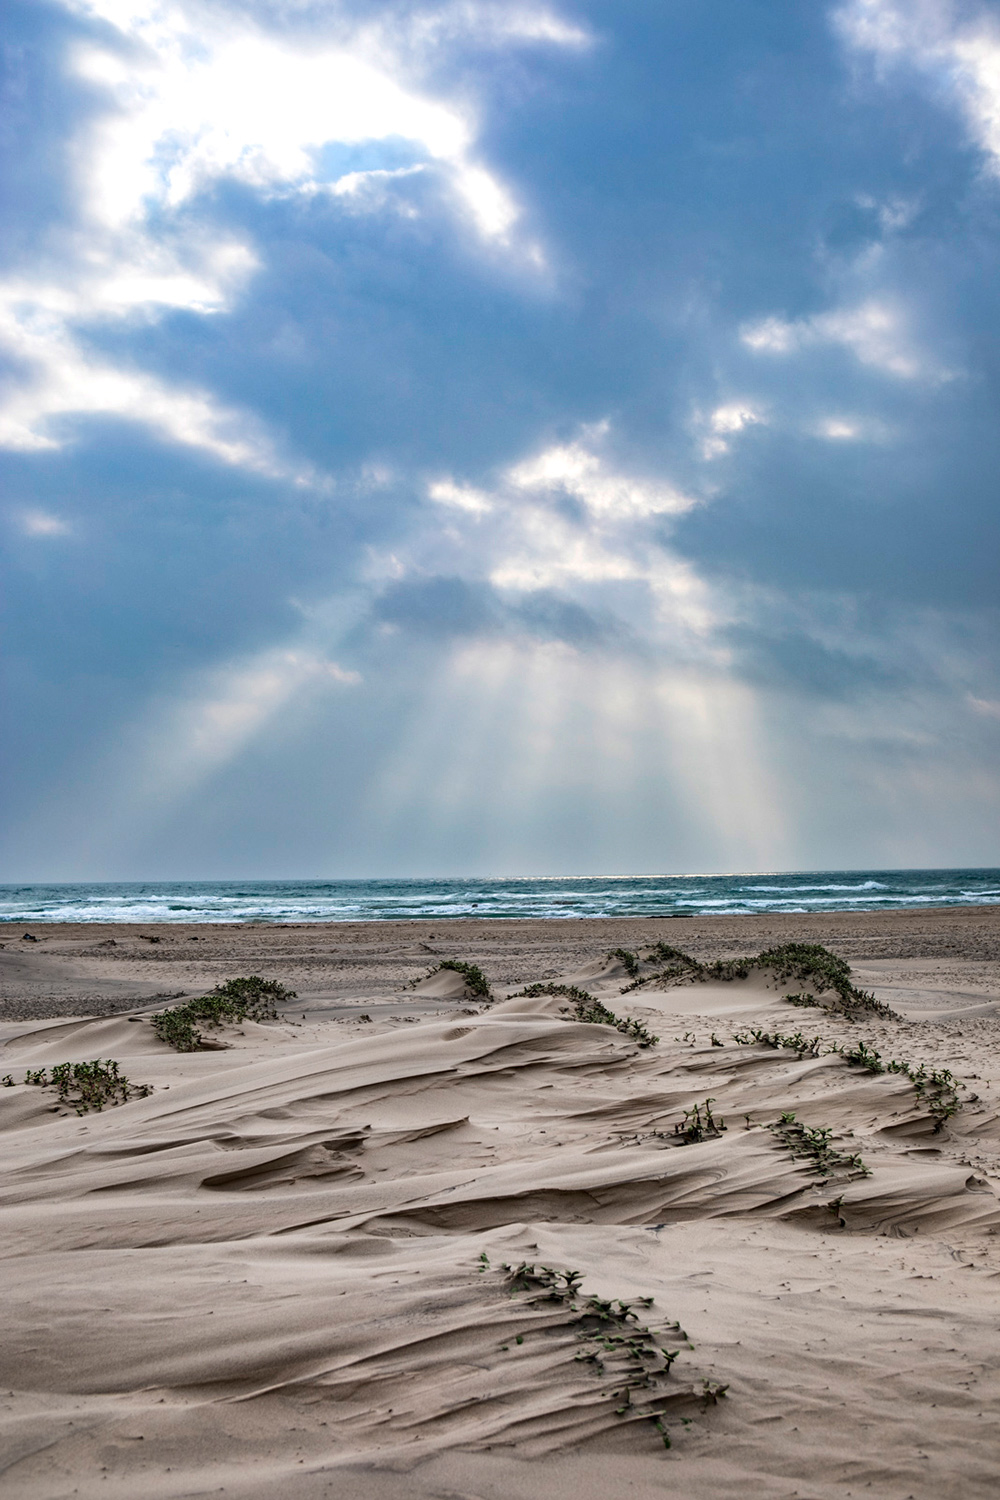 Sand dunes on Texas beach with dramatic clouds